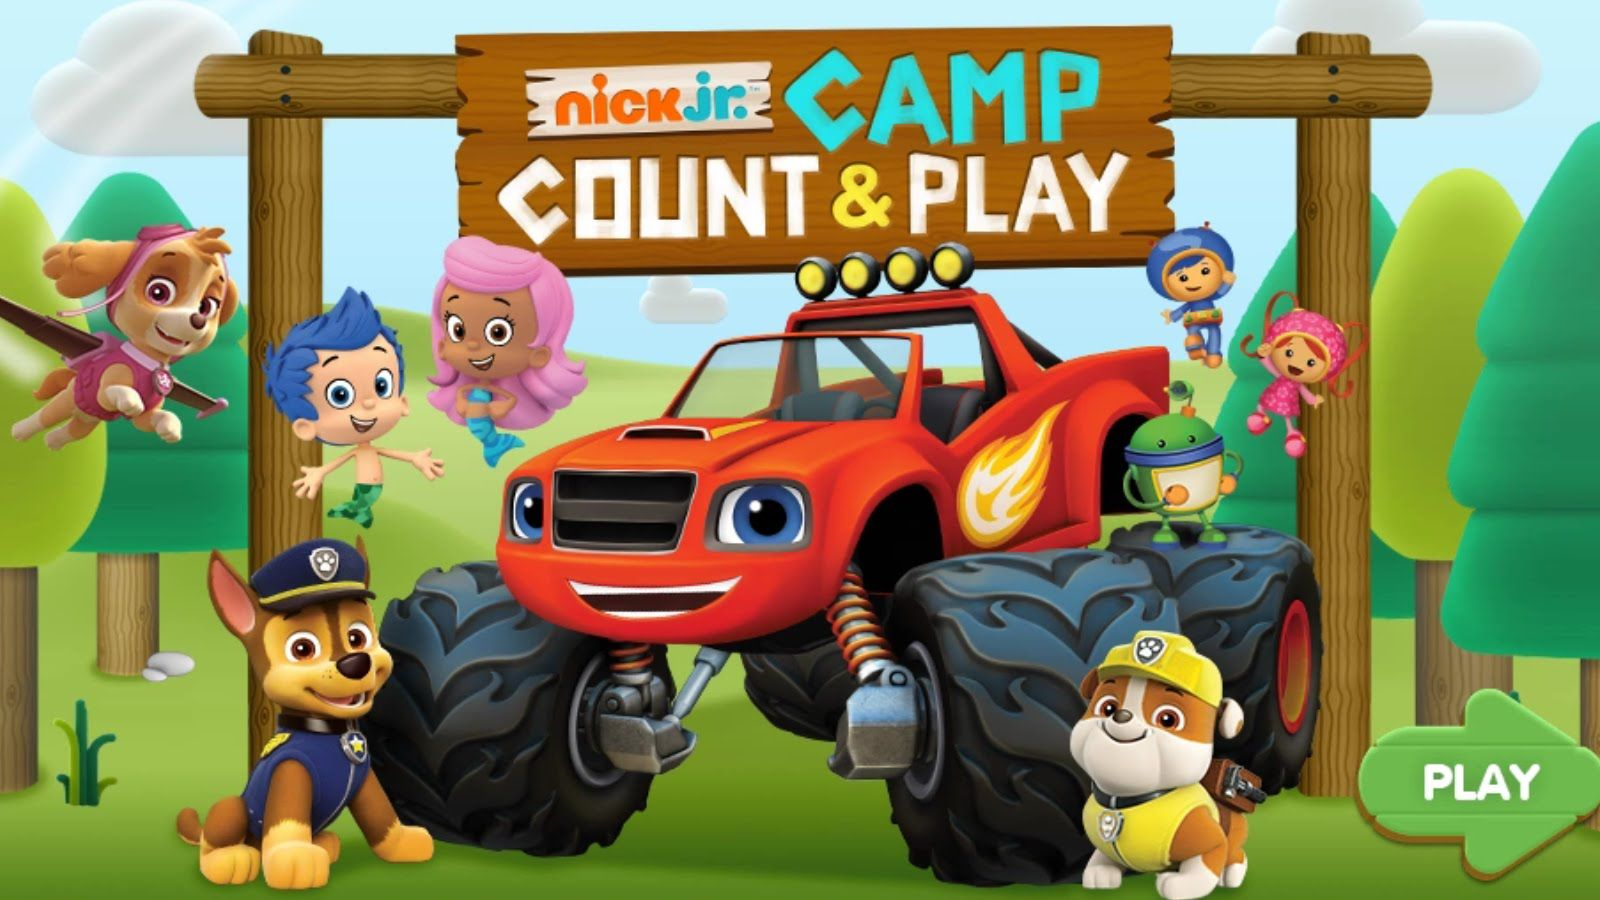 Nick Jr.: Camp Count & Play - FULL   CASUAL GAMES   Pinterest